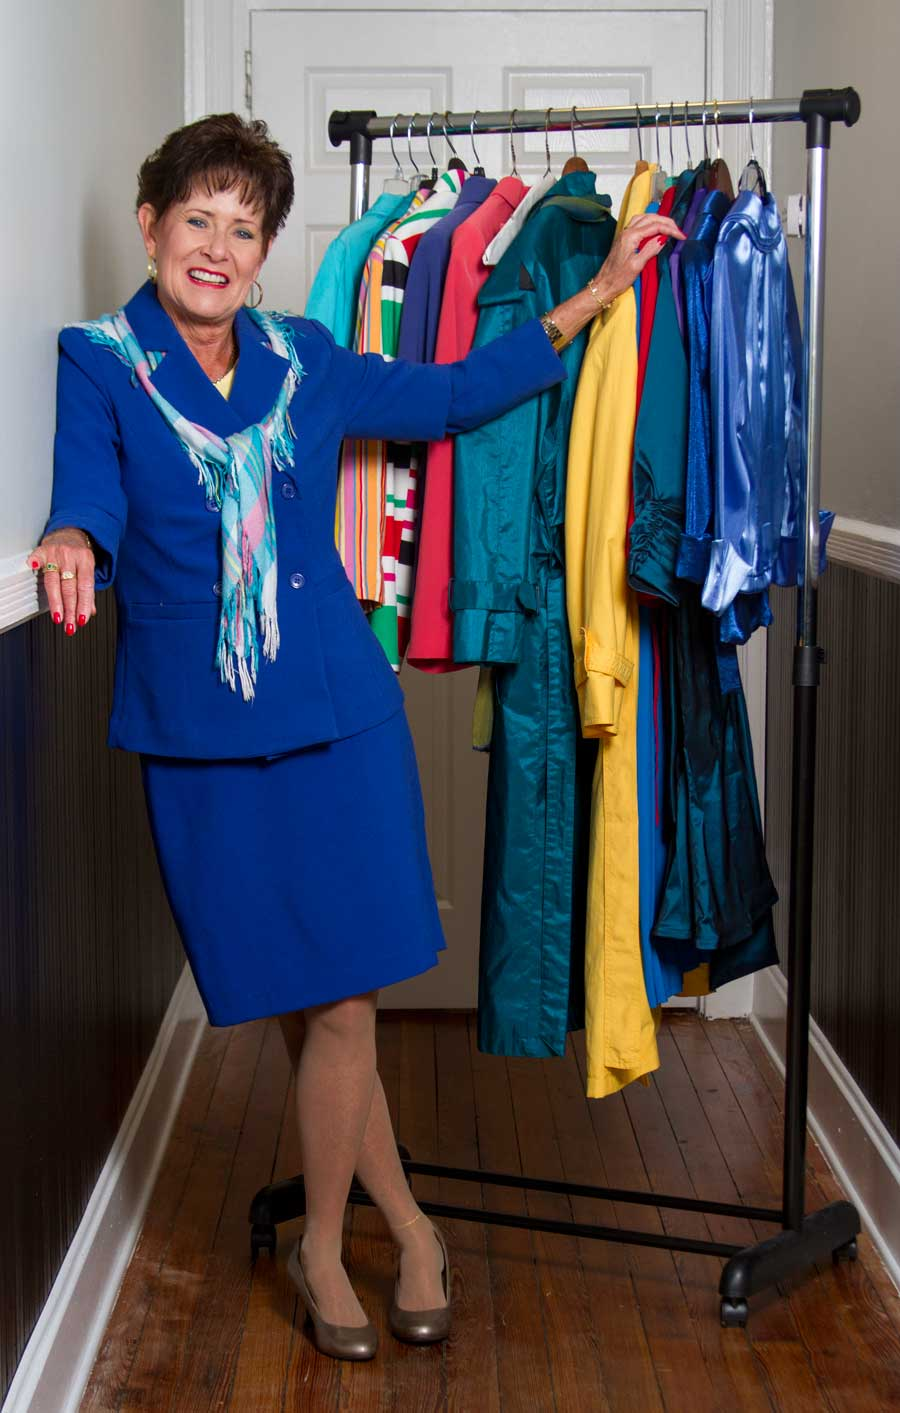 DRESS FOR SUCCESS, May 2015: Betsy Barbieux